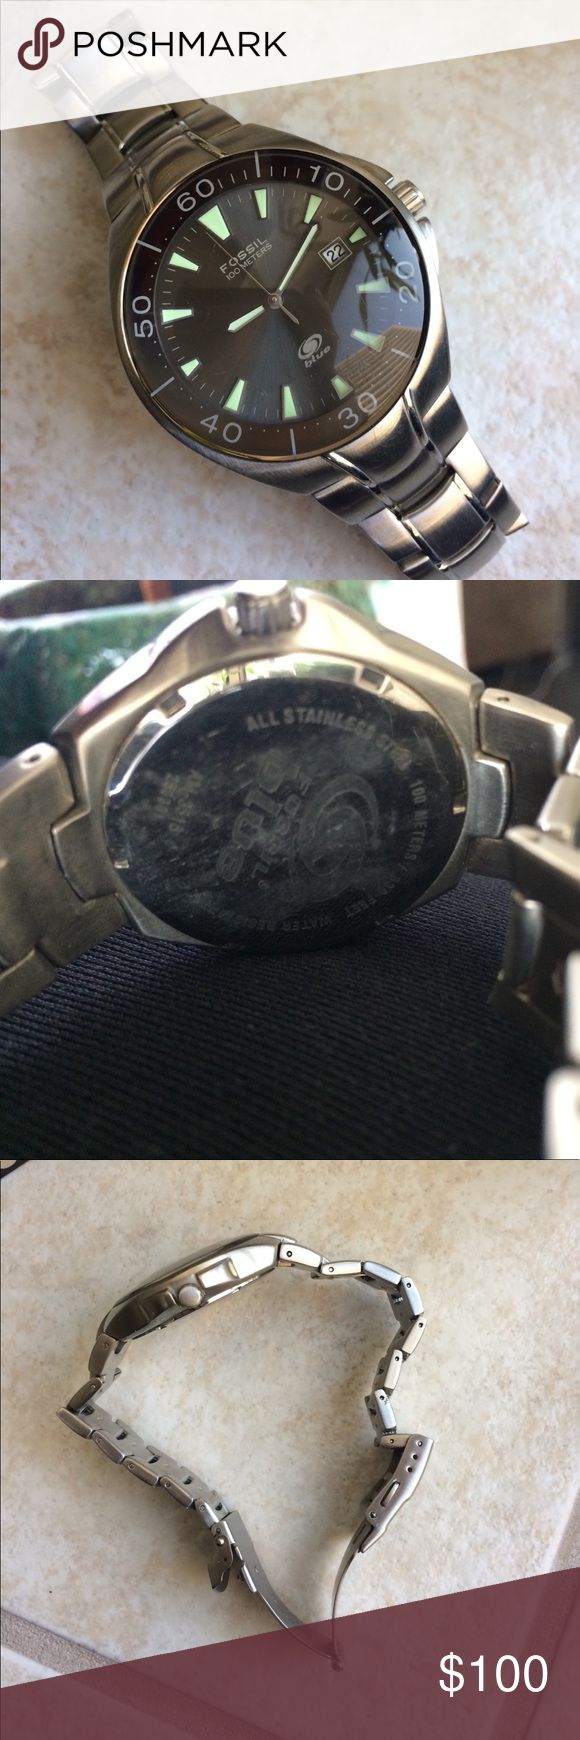 ⚡️SALE⚡️Men's Fossil Blue watch Good condition, a few tiny scratches on the face (too small to be seen in pics). No links have been removed from original size. Might need new battery, usually Fossil stores will do this for free. I can't really tell if the face is black or dark dark brown. Glows brightly in the dark Fossil Accessories Watches